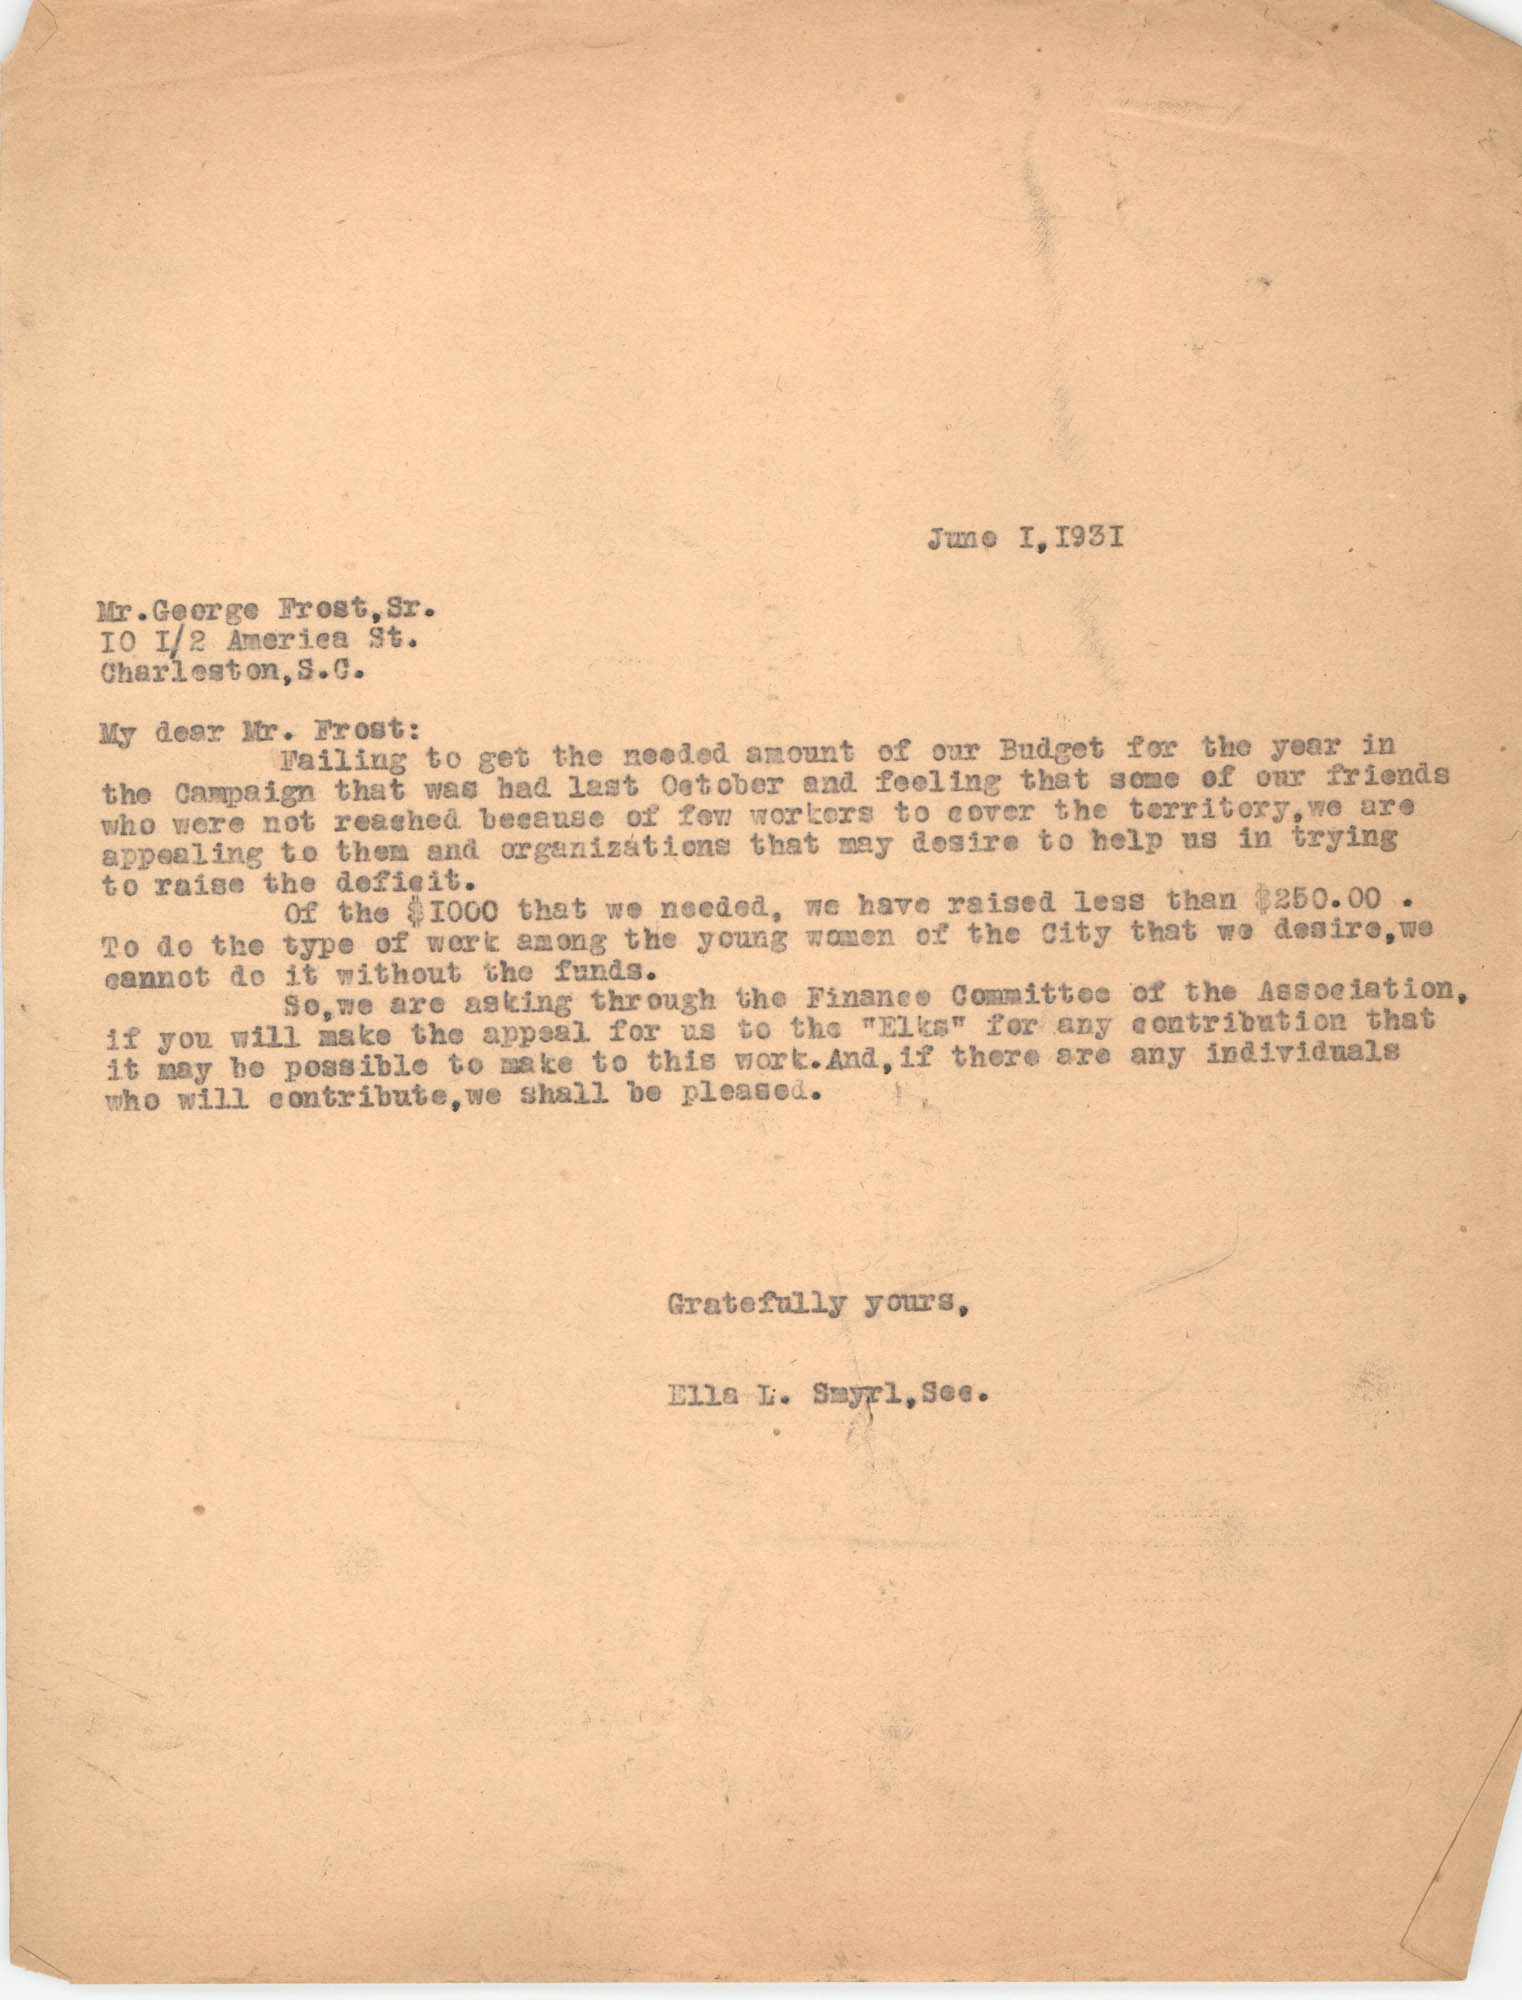 Letter from Ella L. Smyrl to George Frost, Sr., June 1, 1931